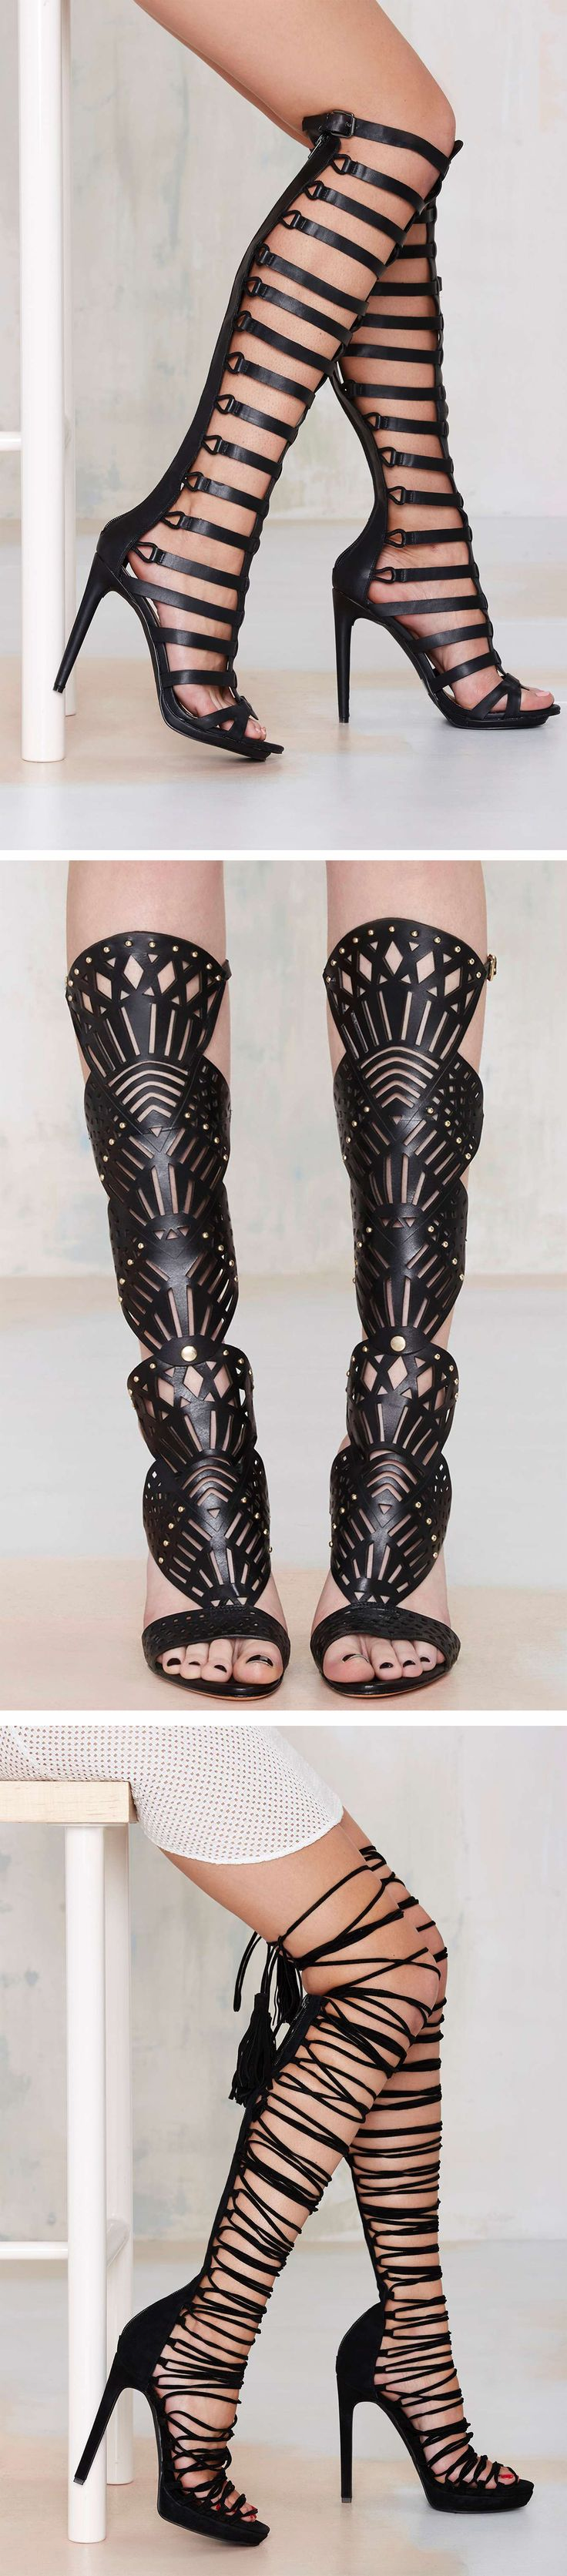 #omgshoes - Step your shoe game up in these awesome knee-high gladiator heels from Nasty Gal, Jeffrey Campbell, Schutz and more!